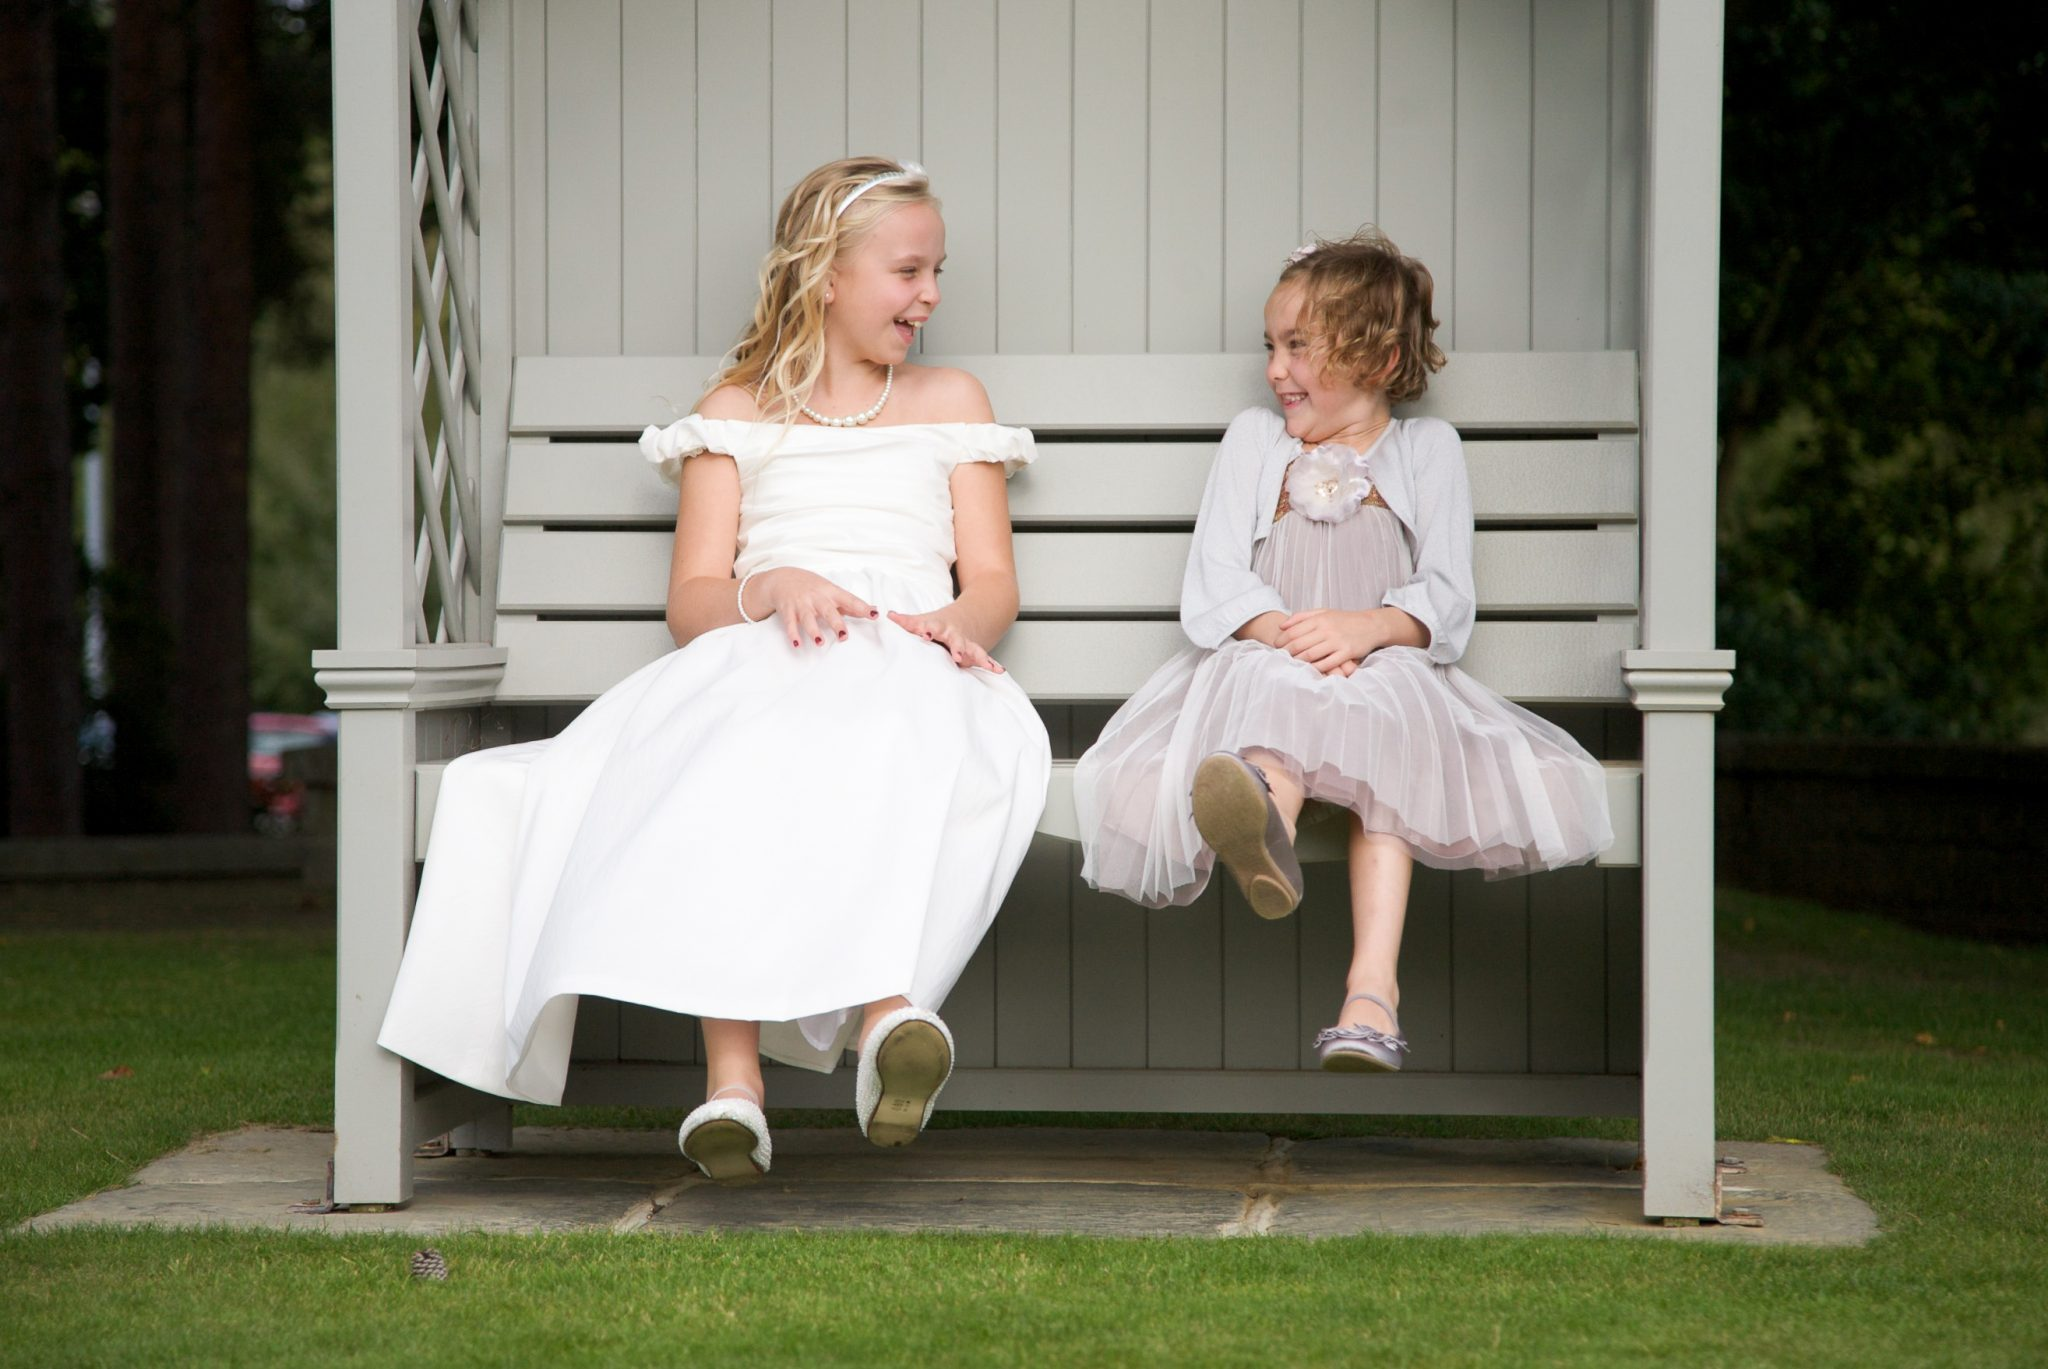 Bridesmaids giggling on bench at wedding taken by Bromley Wedding Photographer